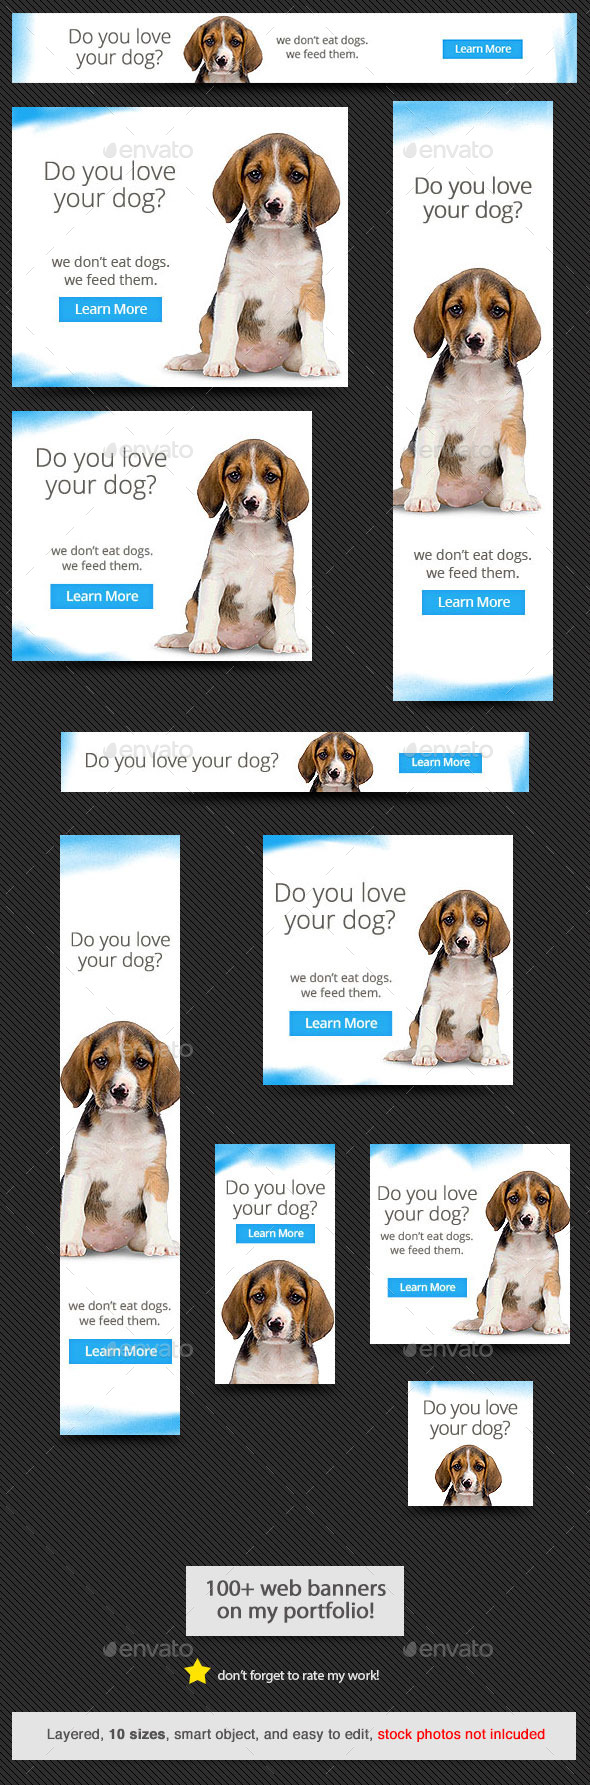 Dog Love Web Banner - Banners & Ads Web Elements